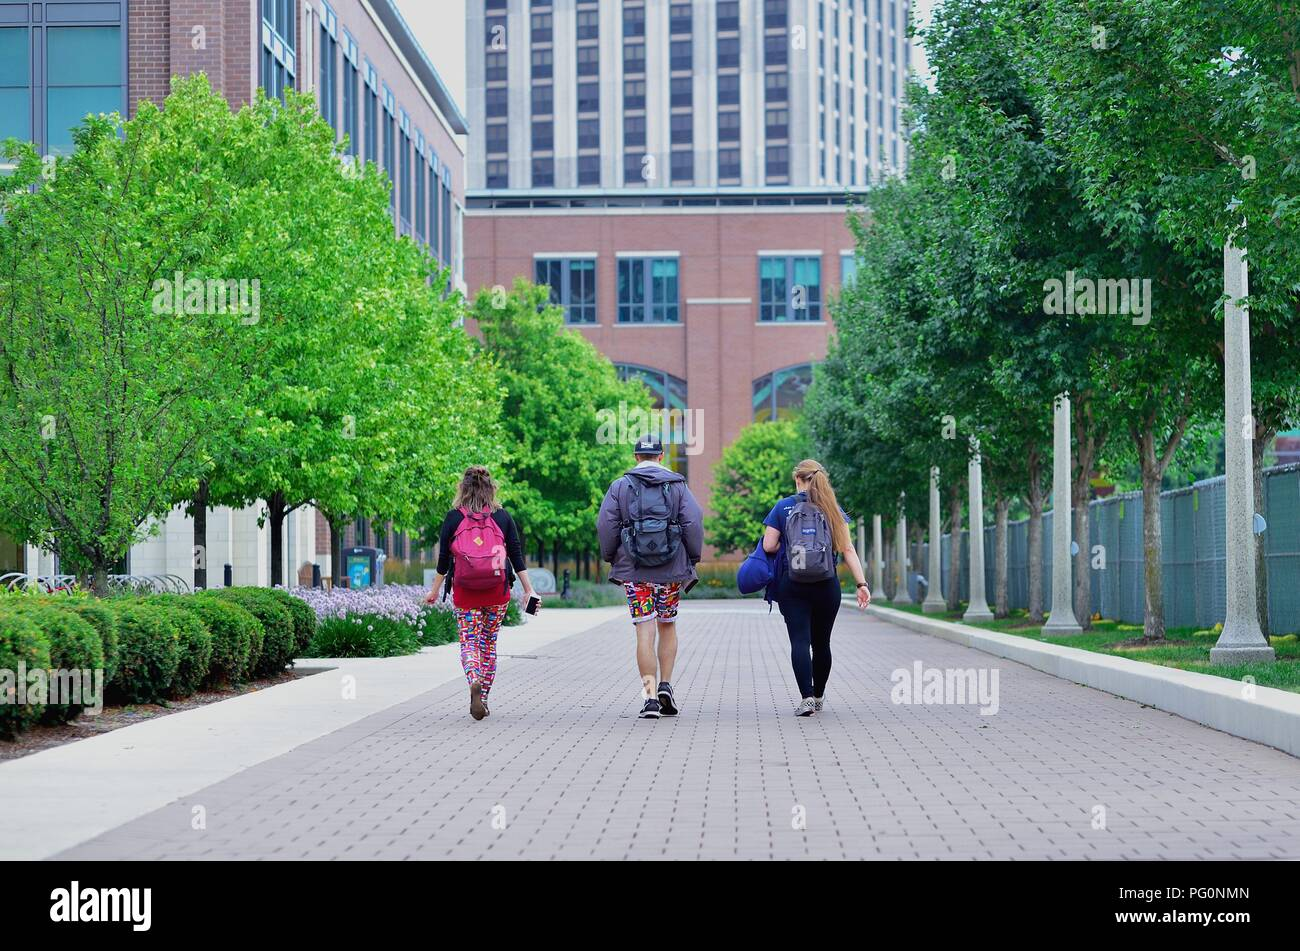 Chicago, Illinois, USA. Students walking on the campus of Loyola Univeristy. The Ctaholic Jesuit university is located on Chicago's far North Side. - Stock Image